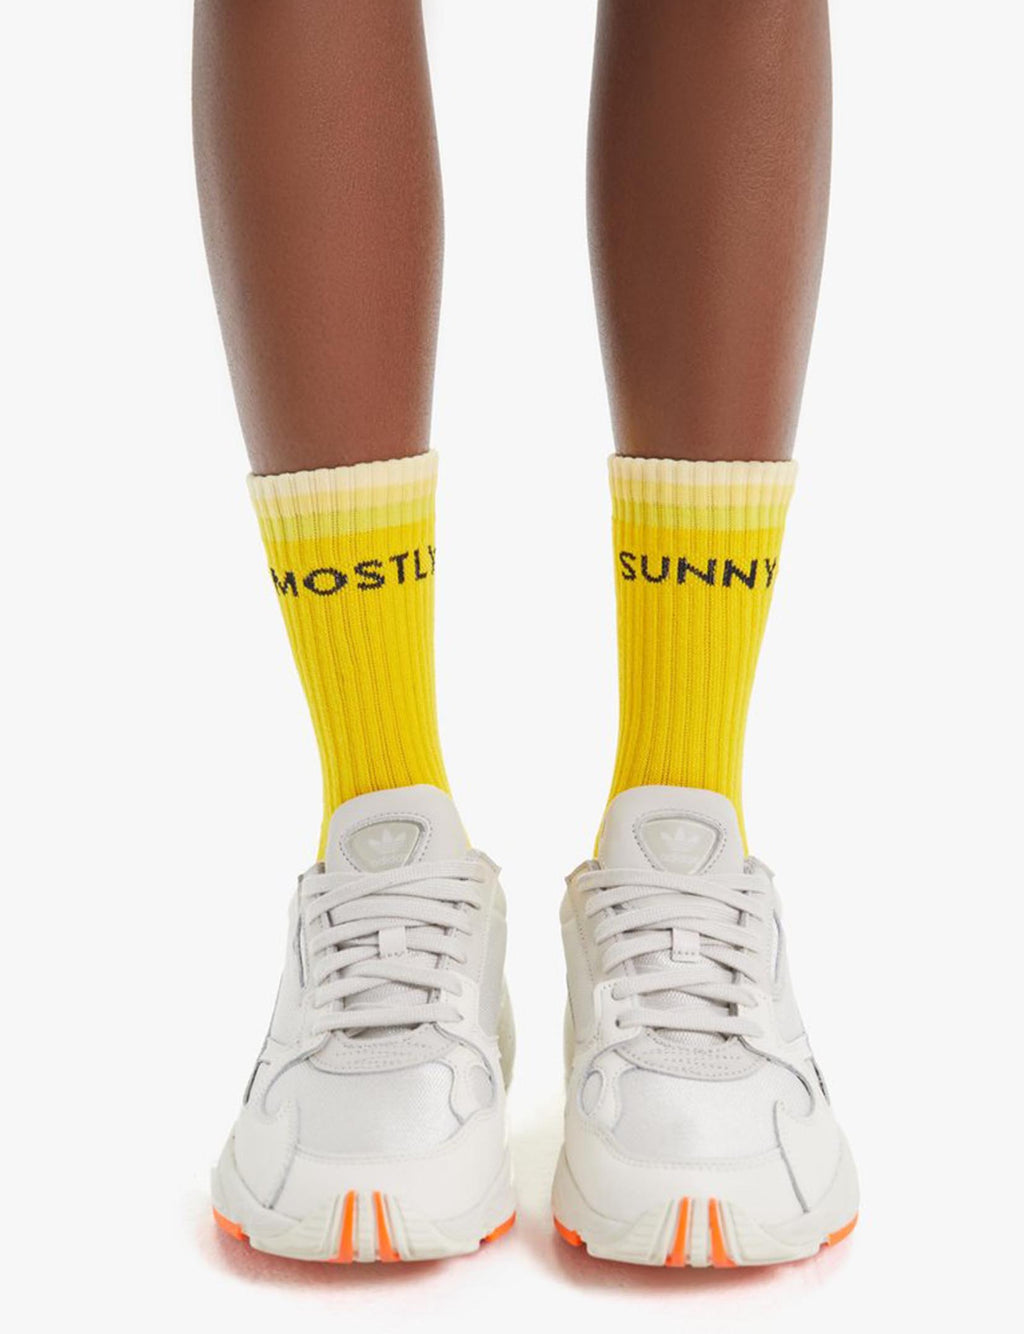 "Baby Steps Socks ""Mostly Sunny"" Yellow"